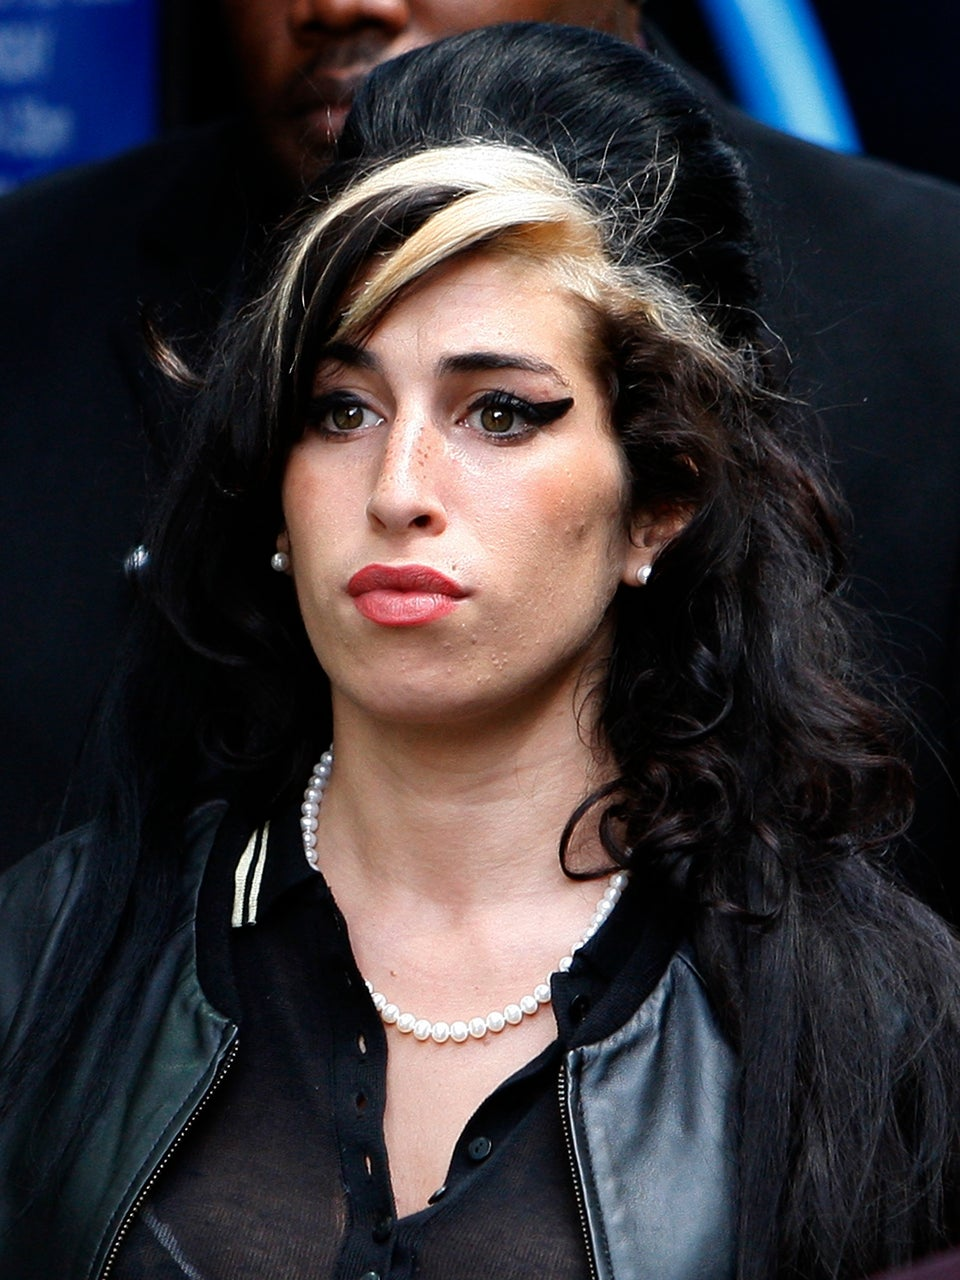 Amy Winehouse Was Drug-Free at Time of Death